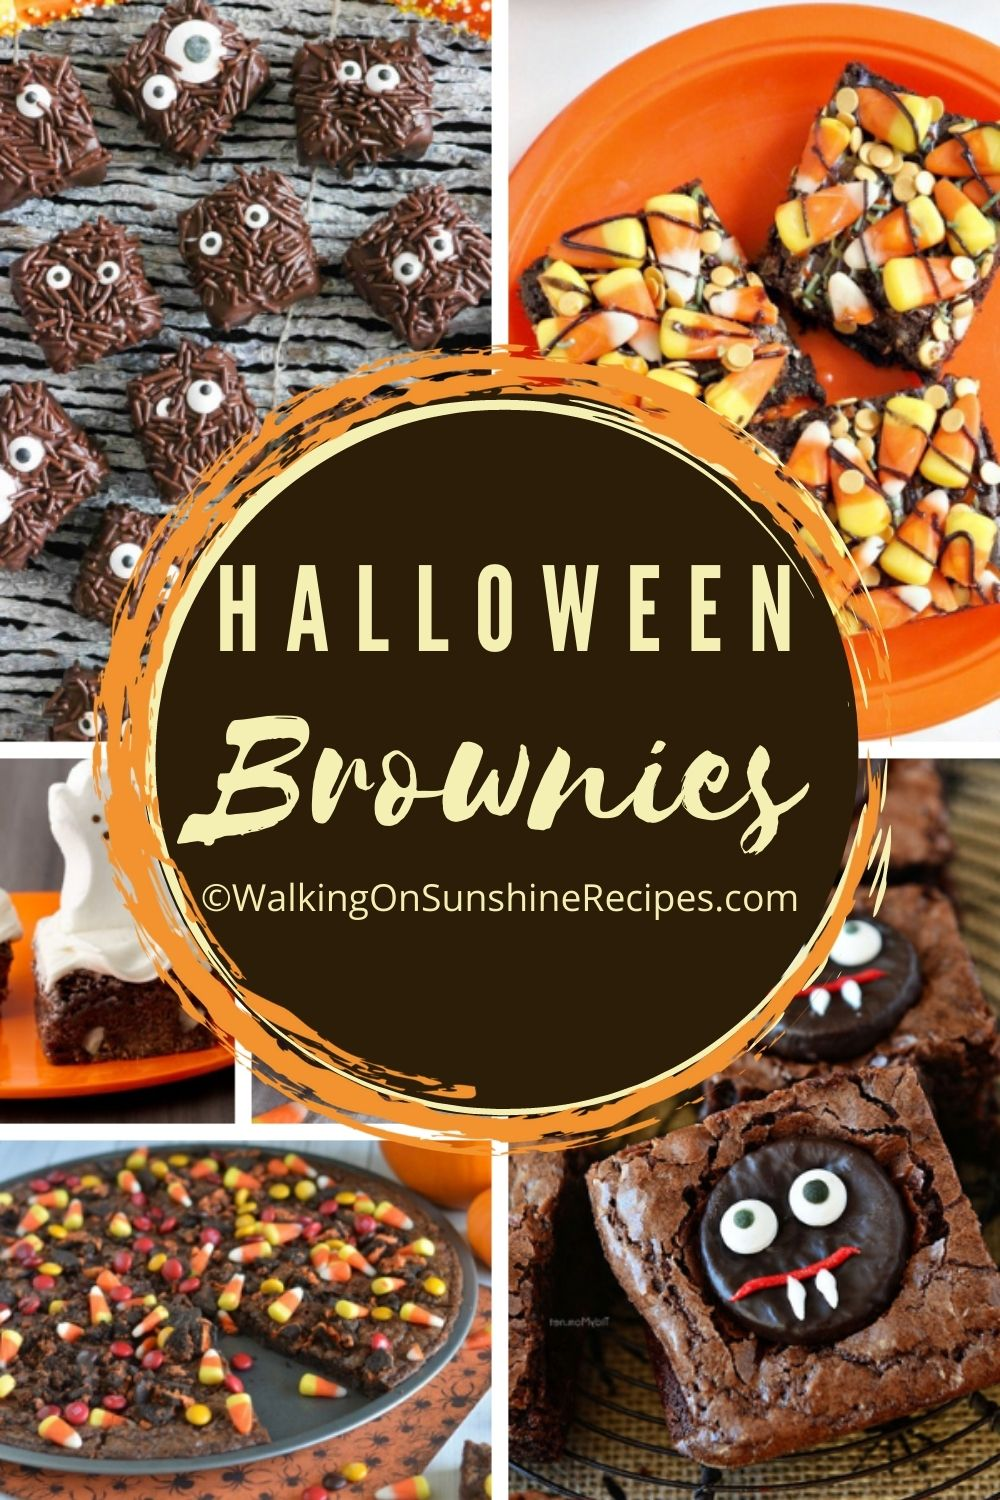 12 different brownies perfect for Halloween.